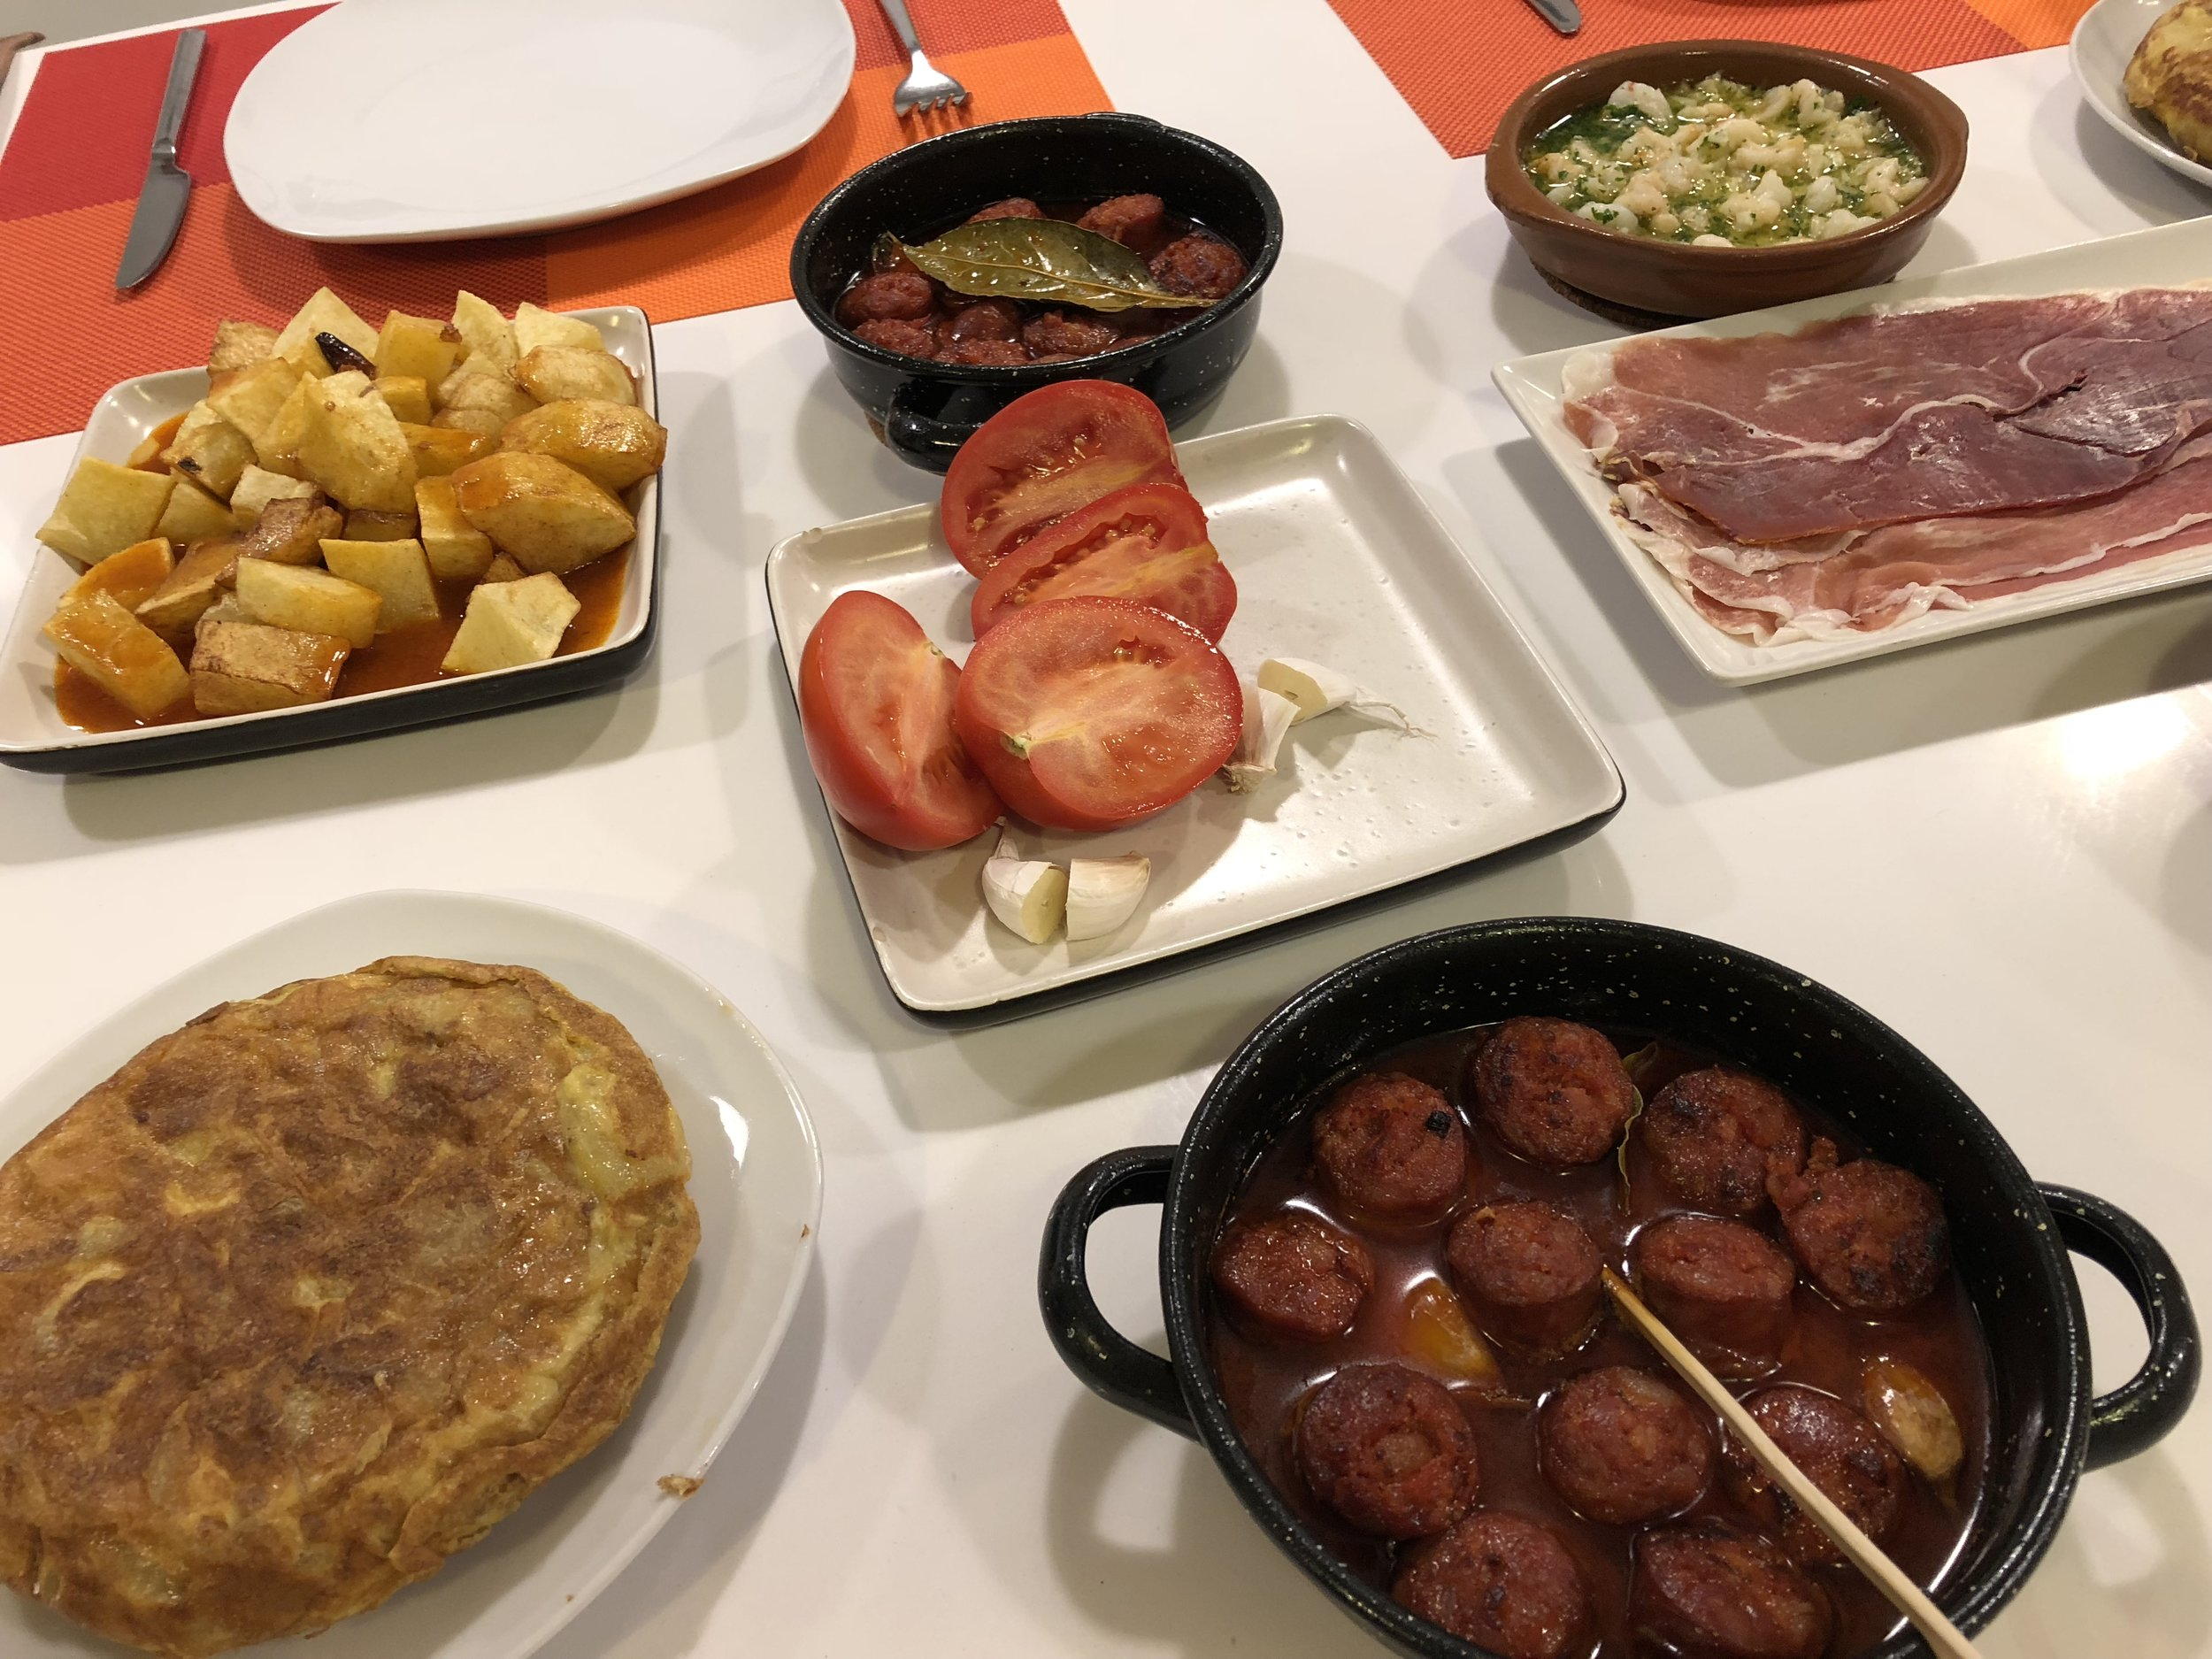 Culmination of our Spanish cooking class! Patatas Bravas, Marinated Chorizos, Garlic Shrimp, Iberico Ham, Tomato Bread, Spanish Omlette.